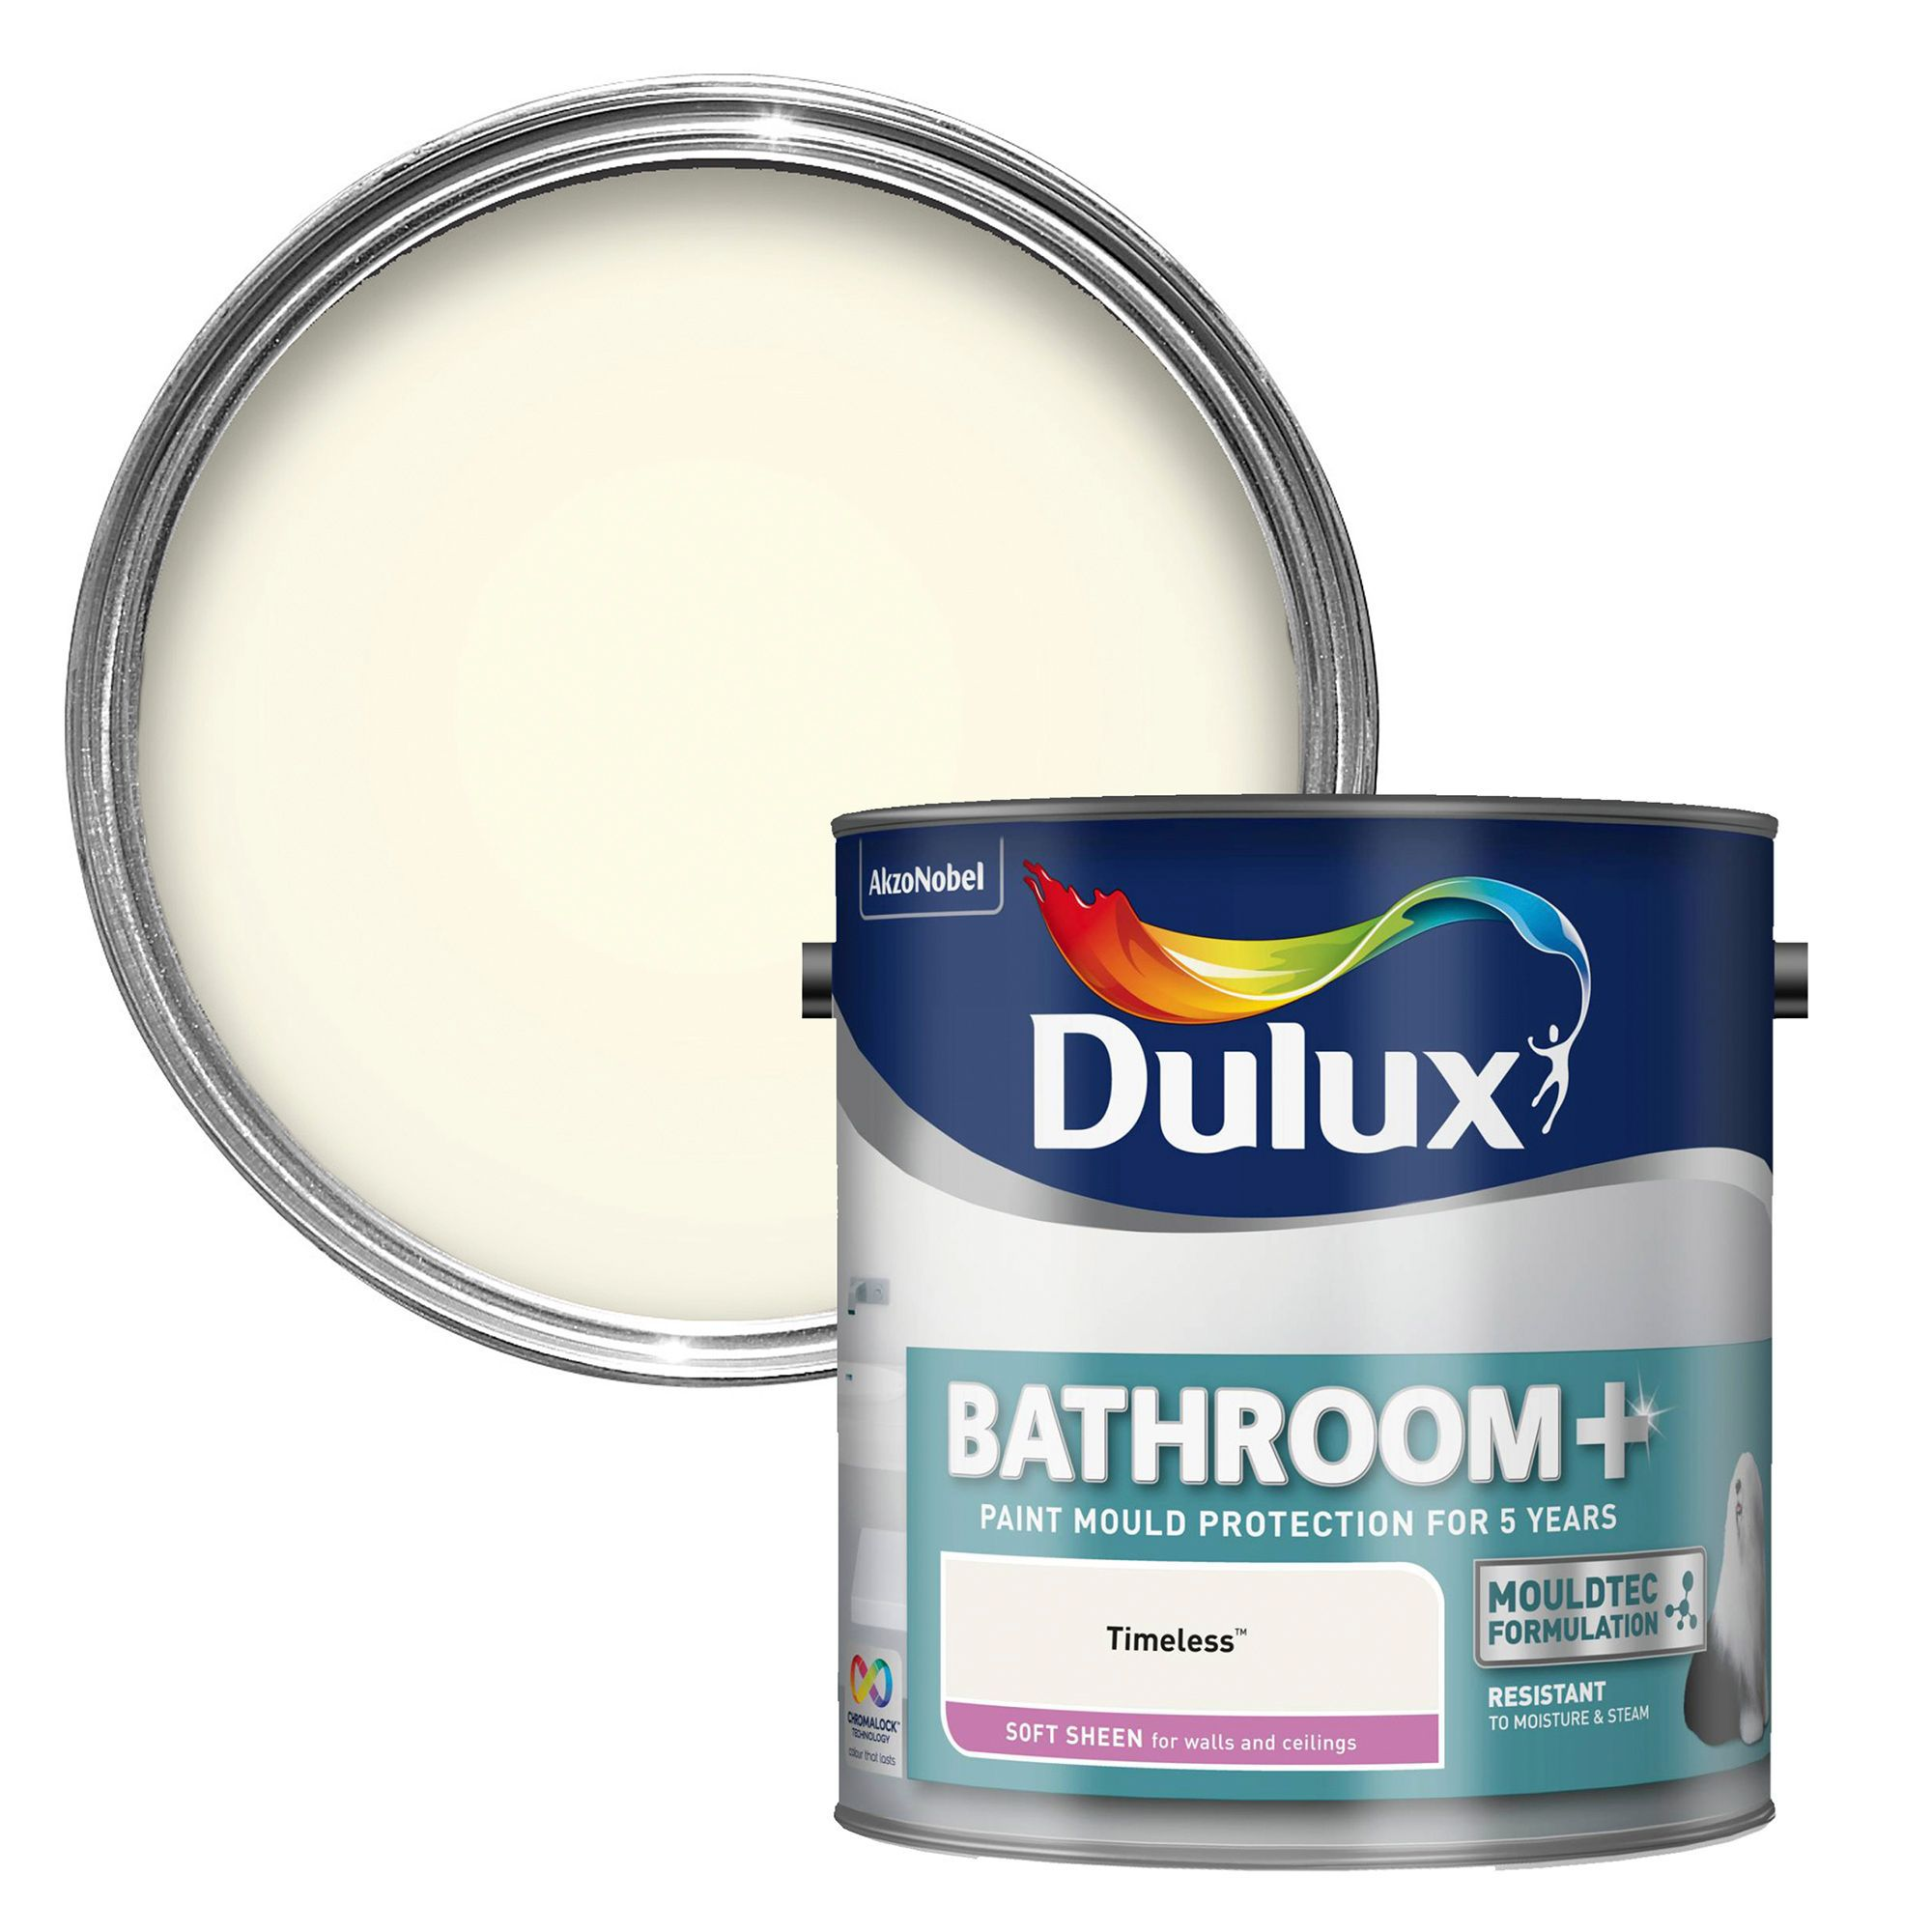 Dulux Bathroom+ Timeless Soft Sheen Emulsion Paint 2.5L ...